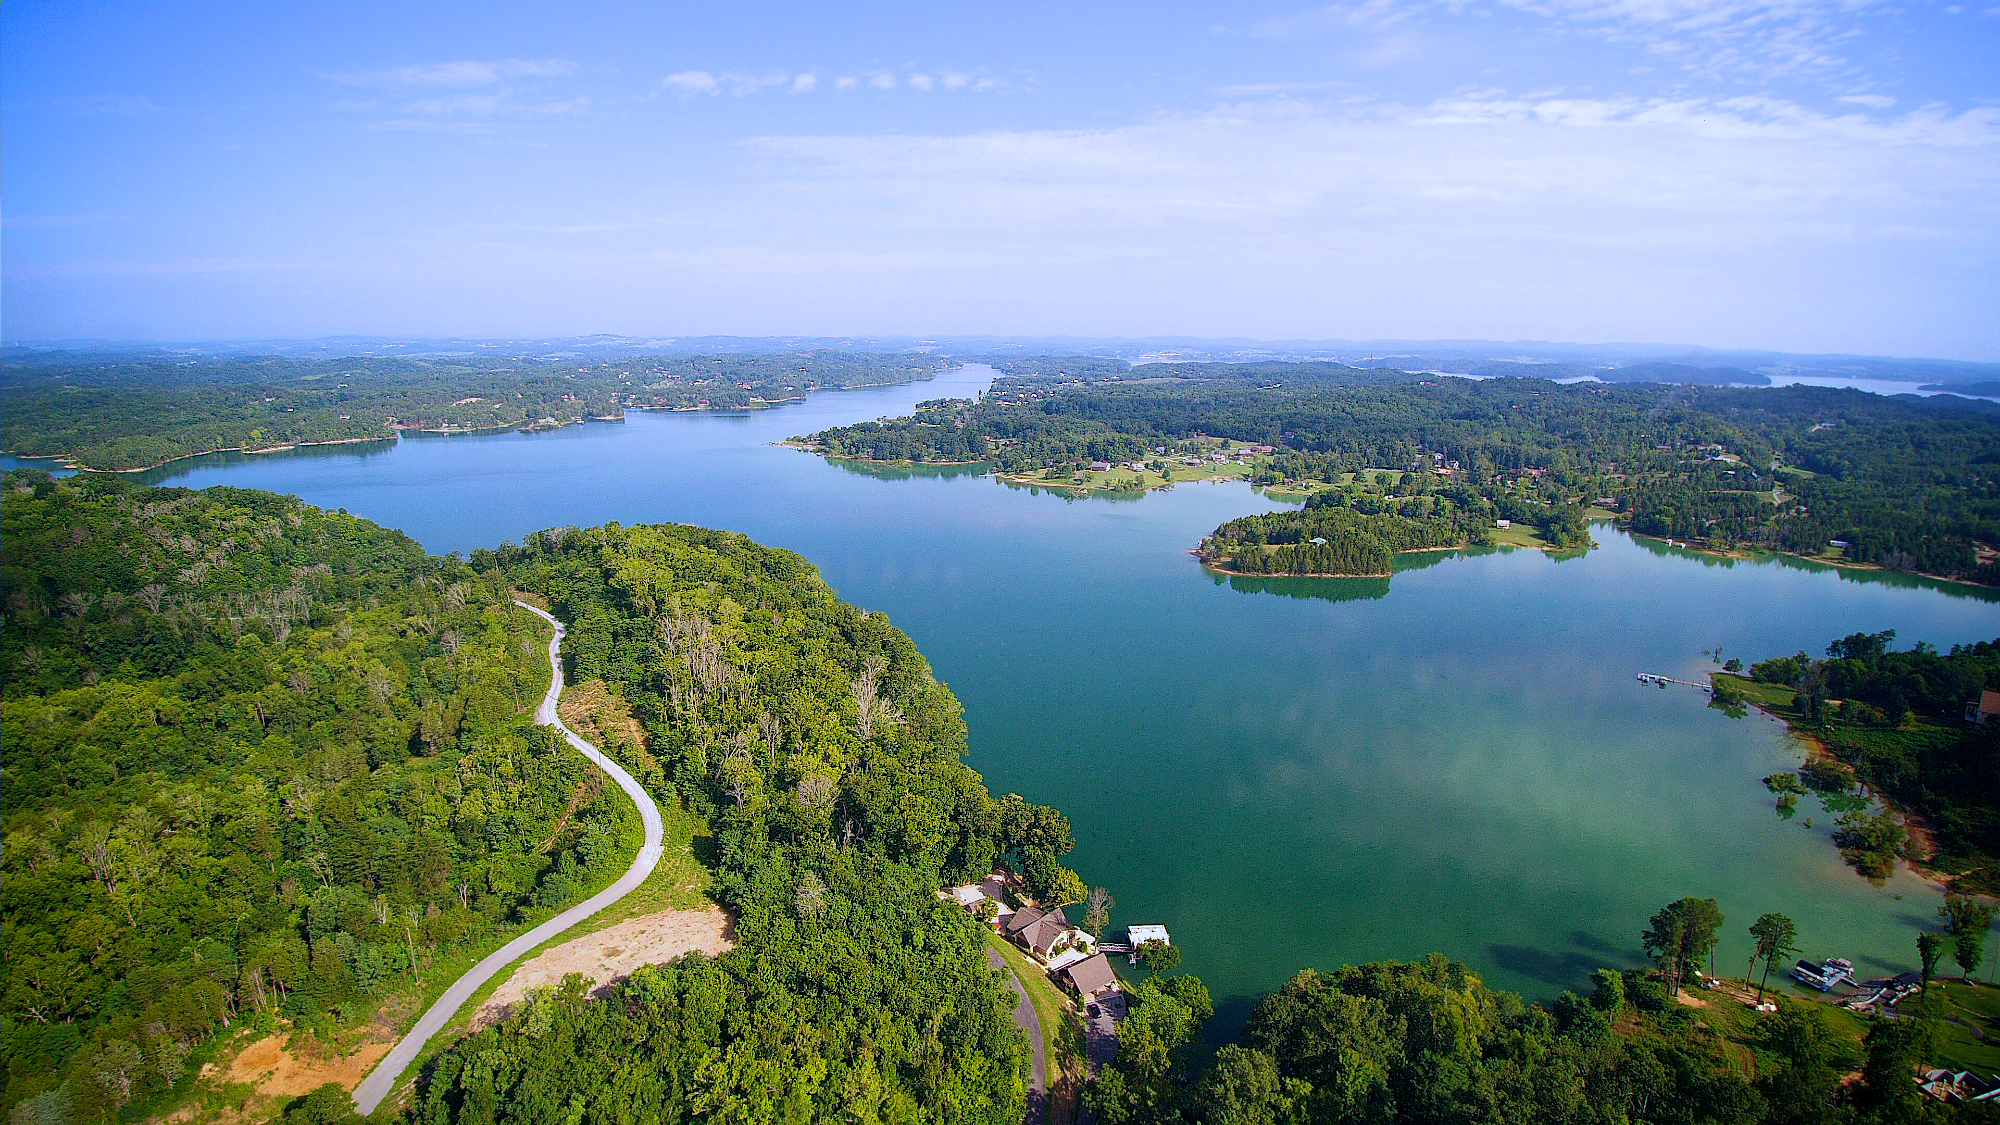 Drone Photography on Douglas Lake